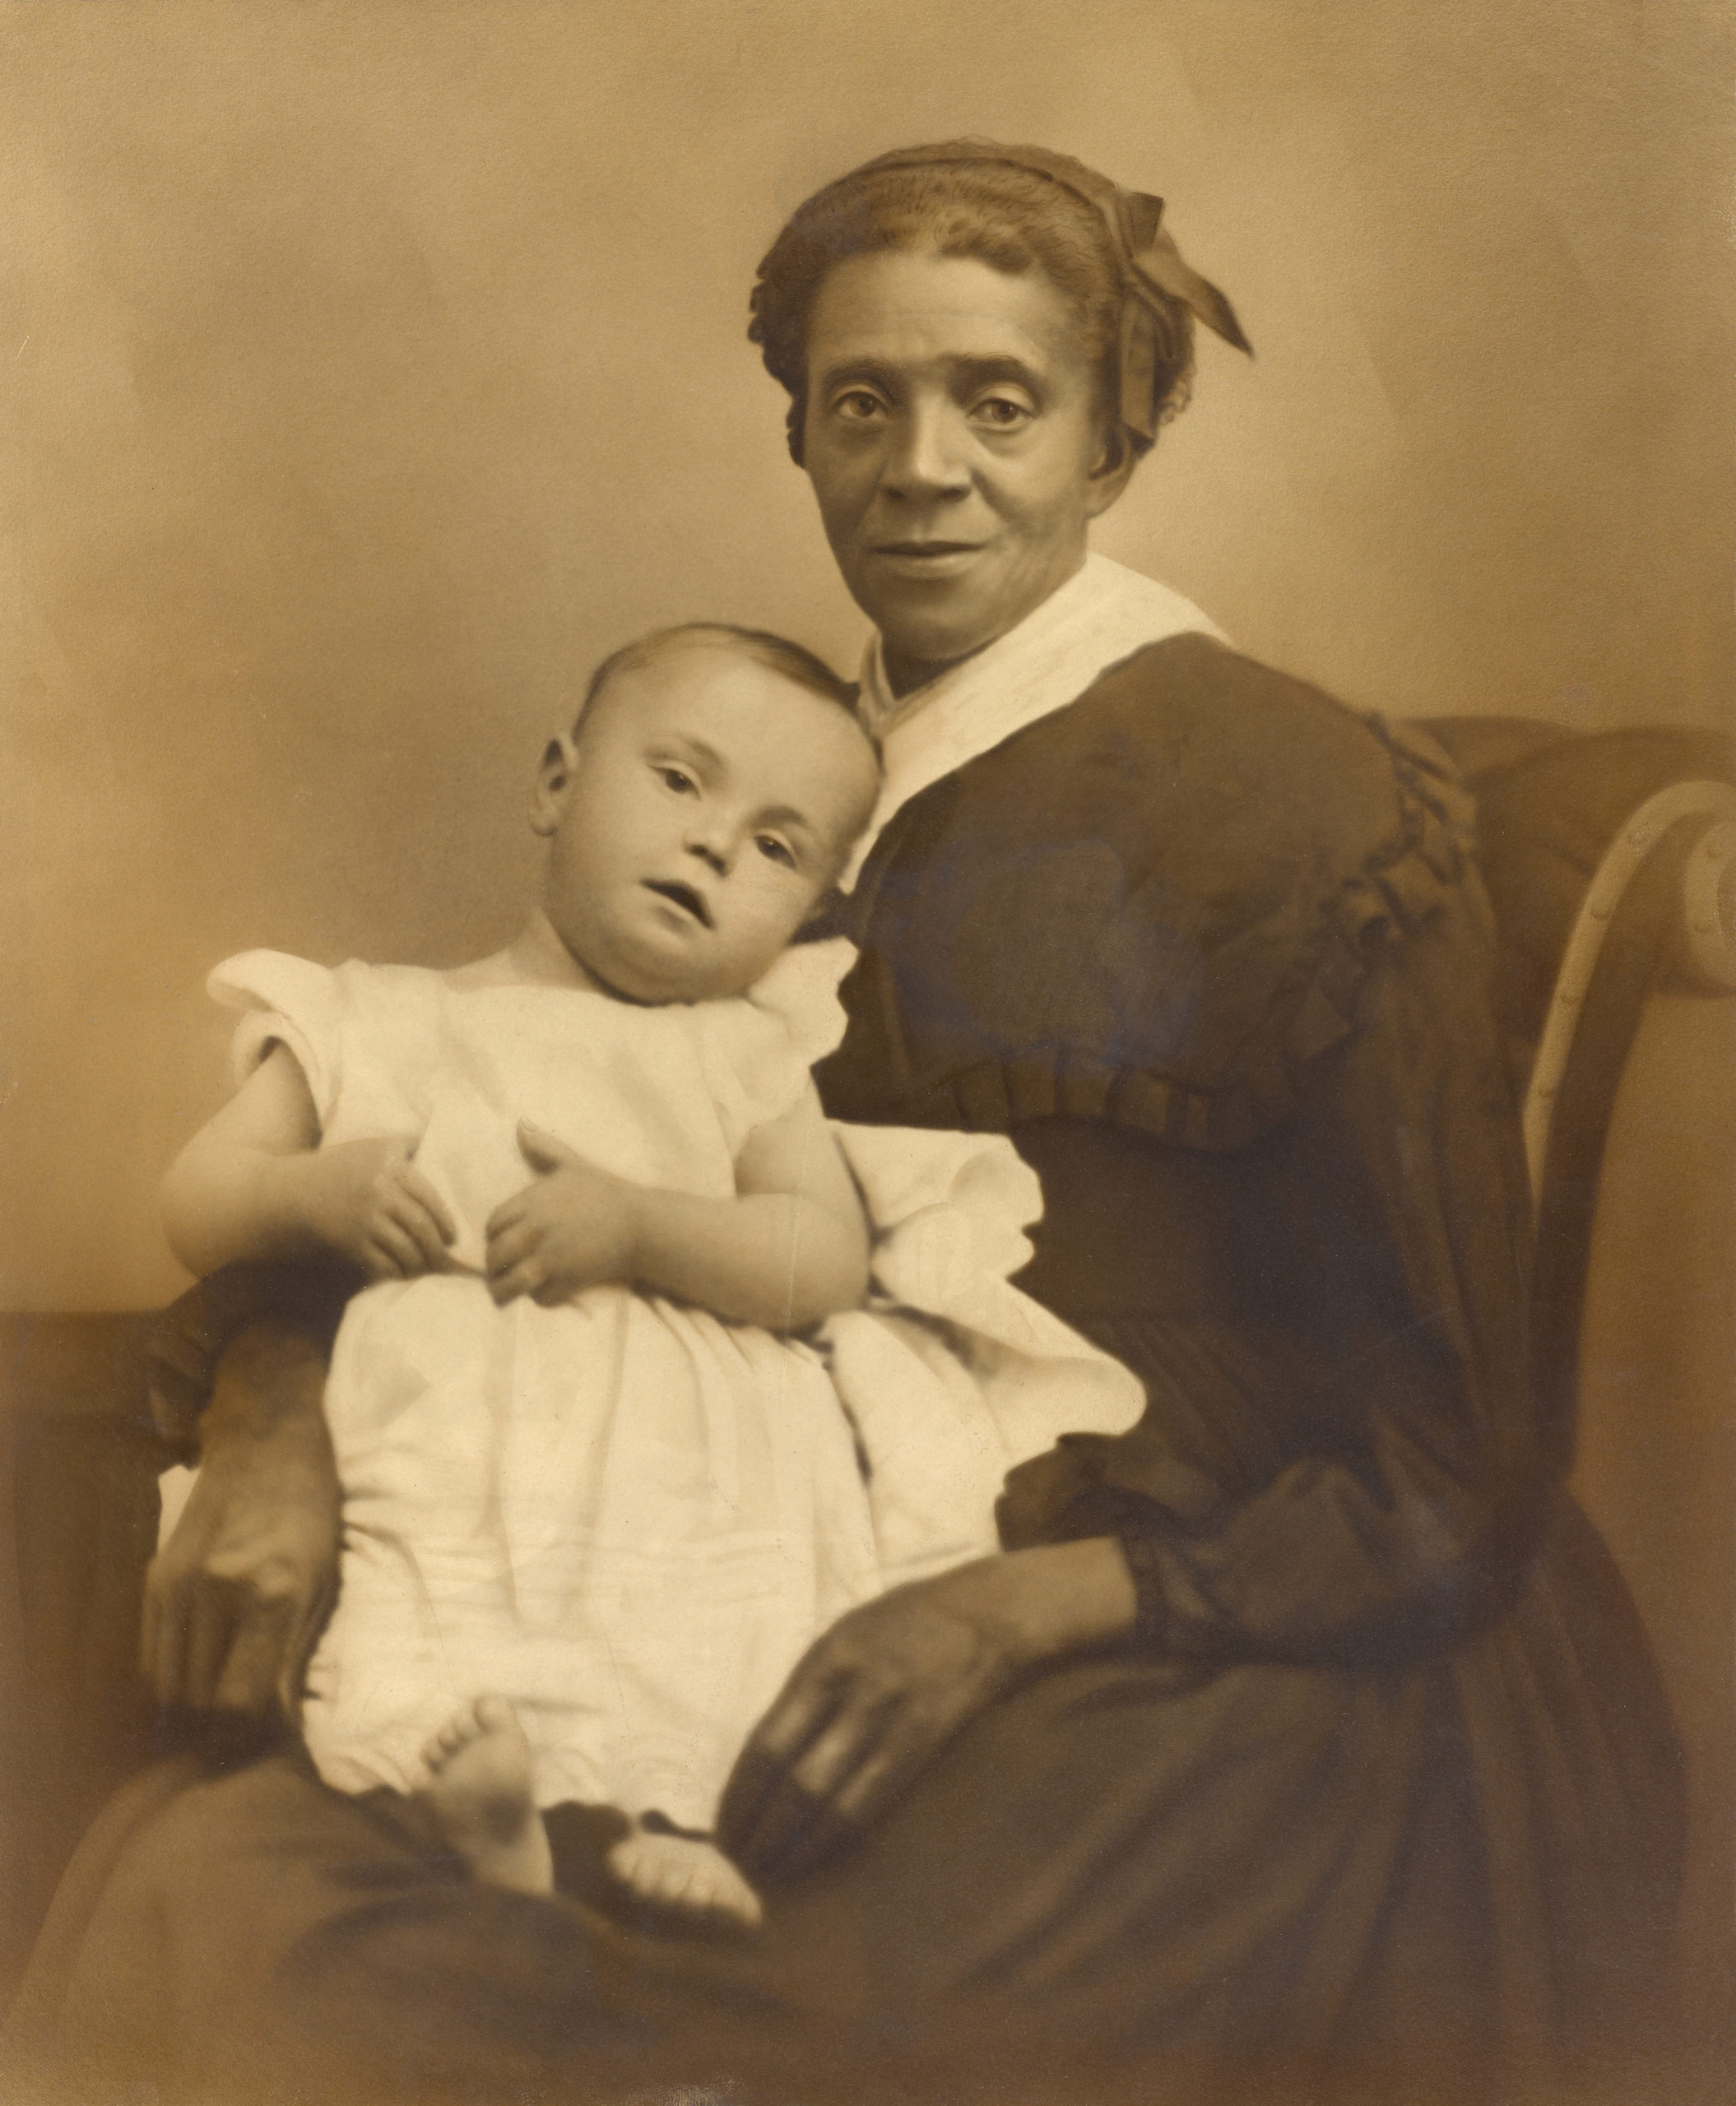 Photograph of child with light skin tone being held by woman with medium-dark skin tone.